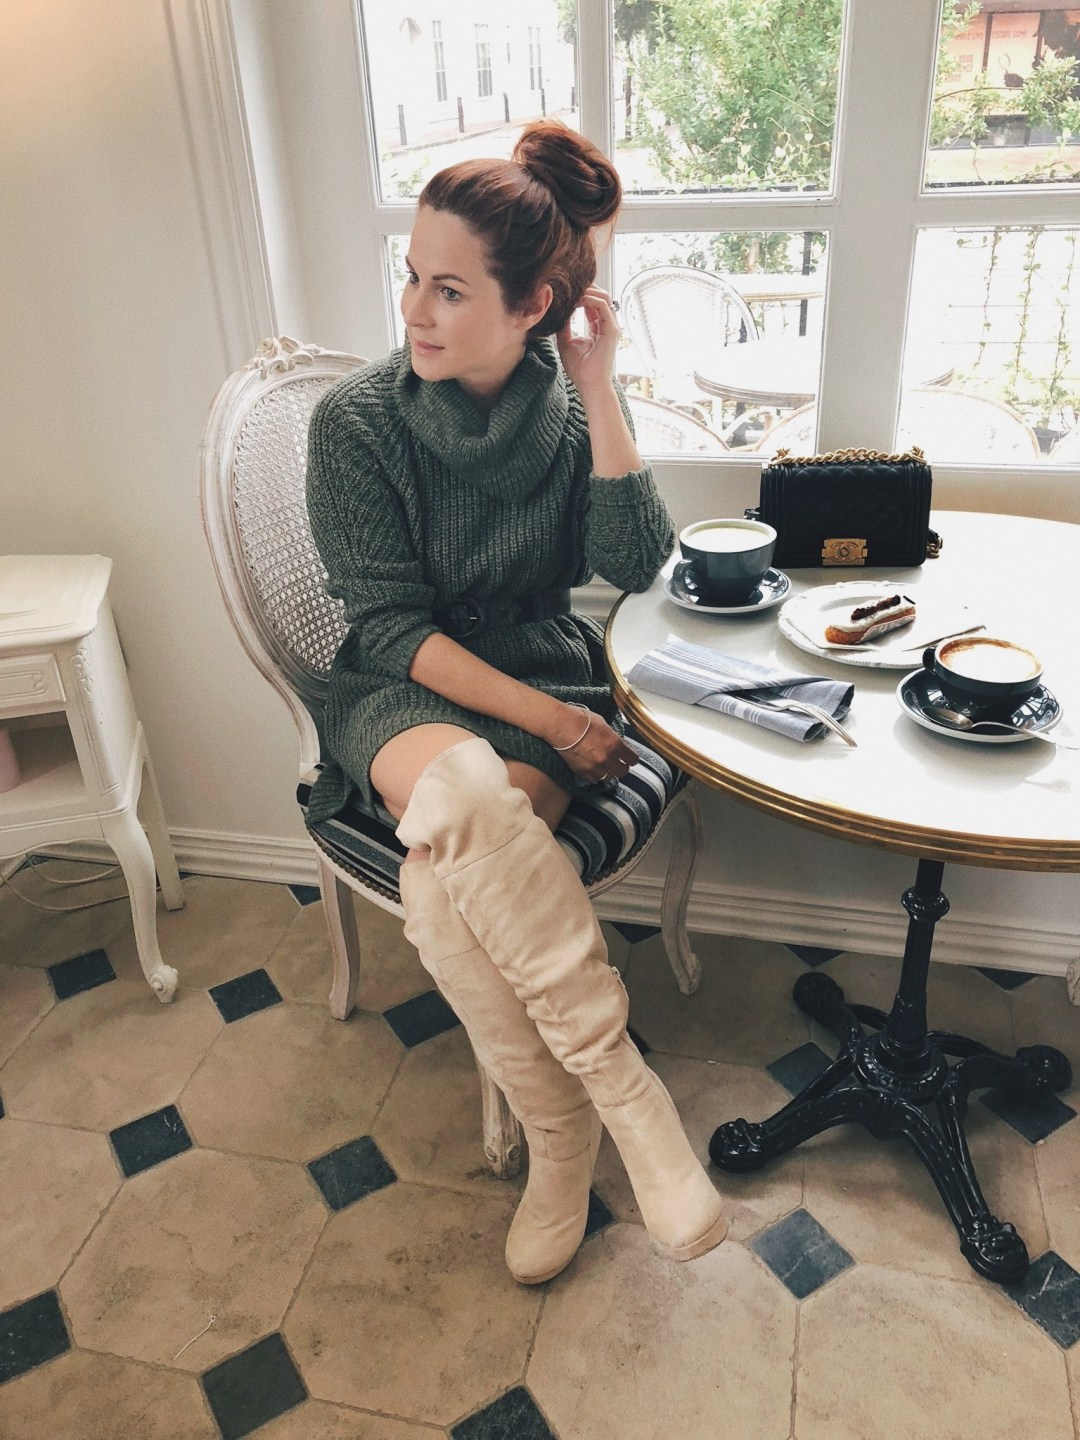 dress and over the knee boots outfits, brunch outfits ideas, turtleneck sweater dresses, french cafe